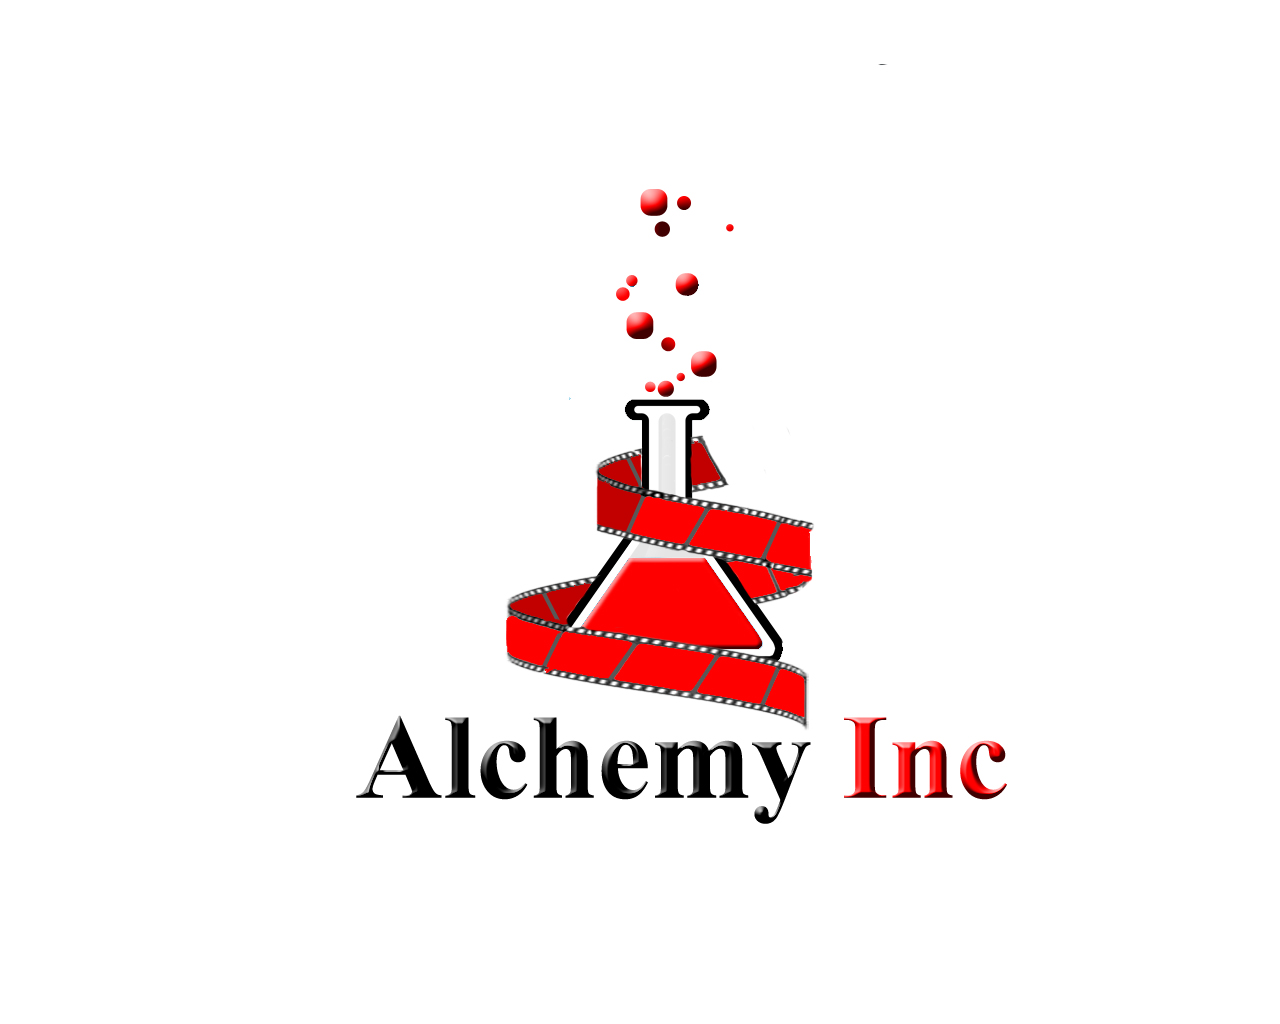 Logo Design by Mythos Designs - Entry No. 1 in the Logo Design Contest Logo Design for Alchemy Inc (Creative/Edgy/Sophisticated).